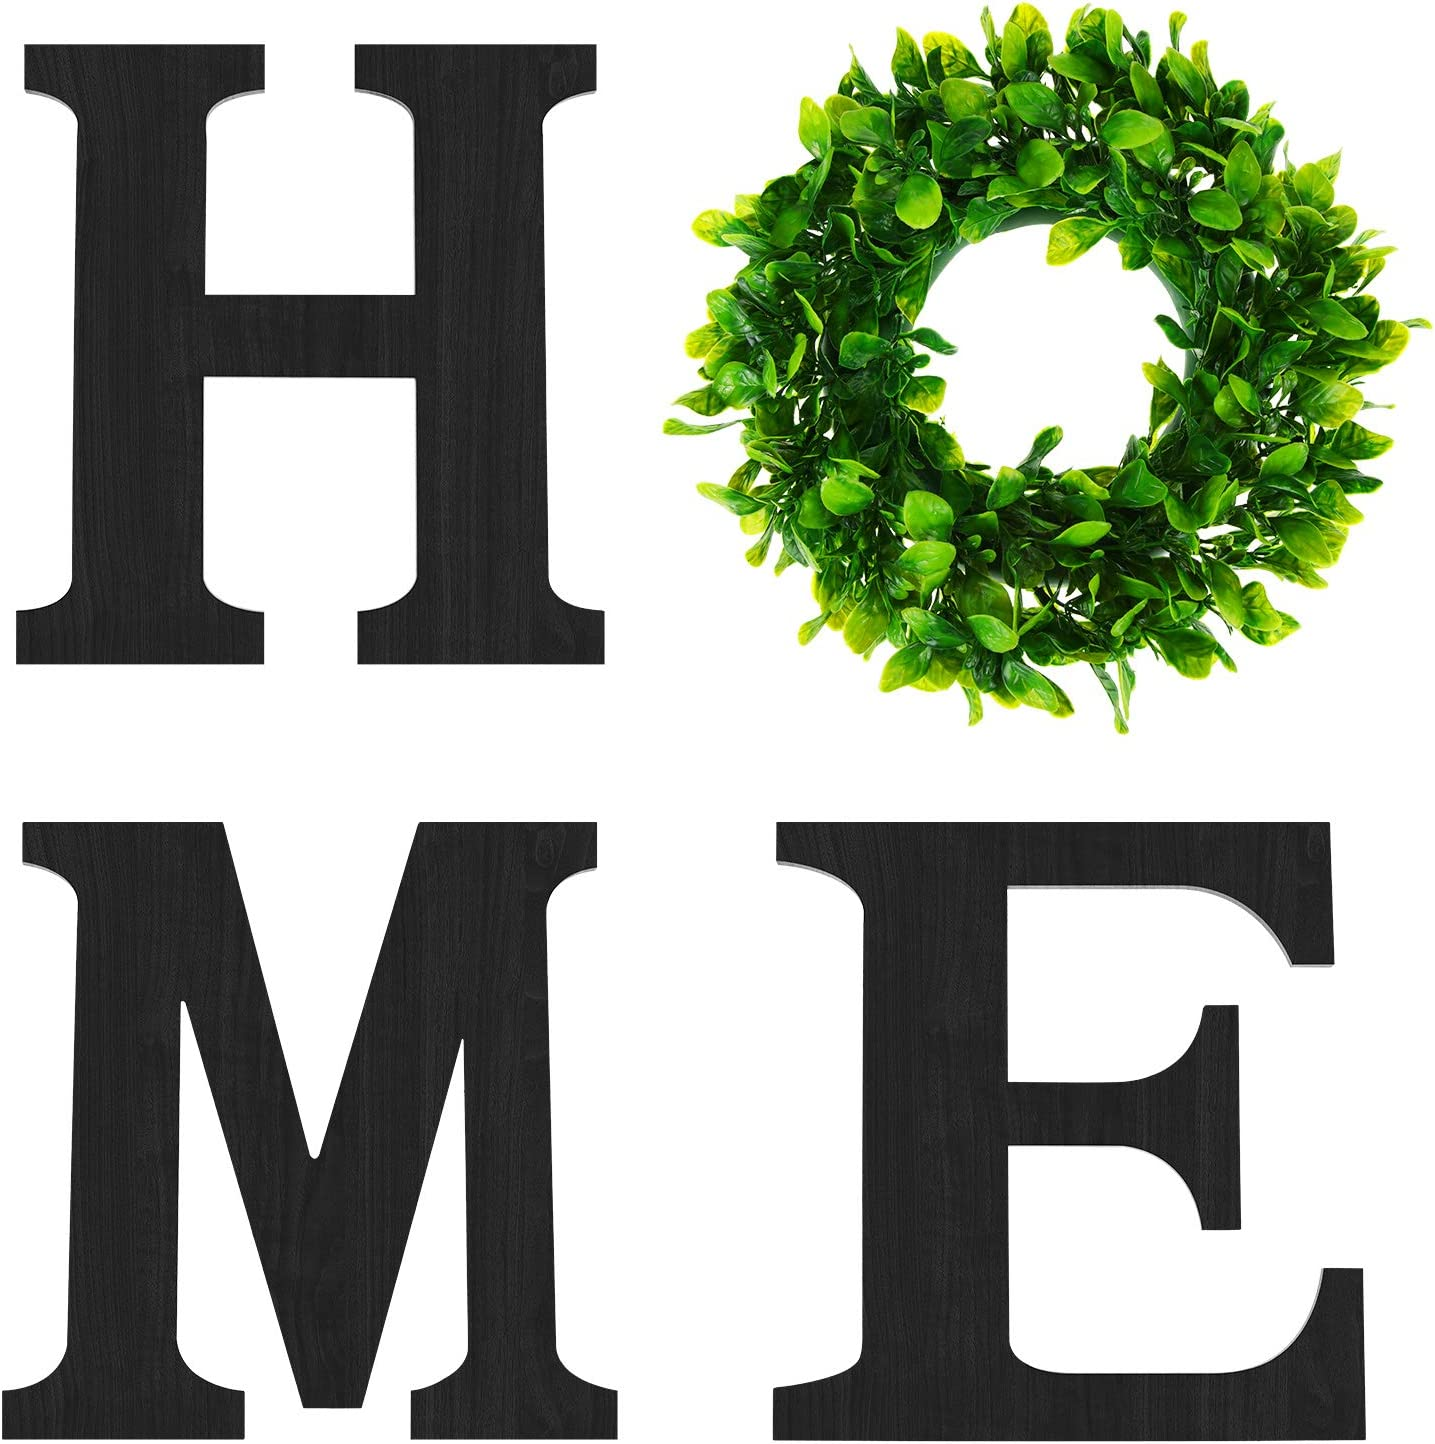 3 Pieces 12 Inch Black Wooden Letters Decorative Home Signs Wall Letters with Green Wreath Flower Garland for Farmhouse Living Room, Bedroom, Kitchen, Doorway Decoration